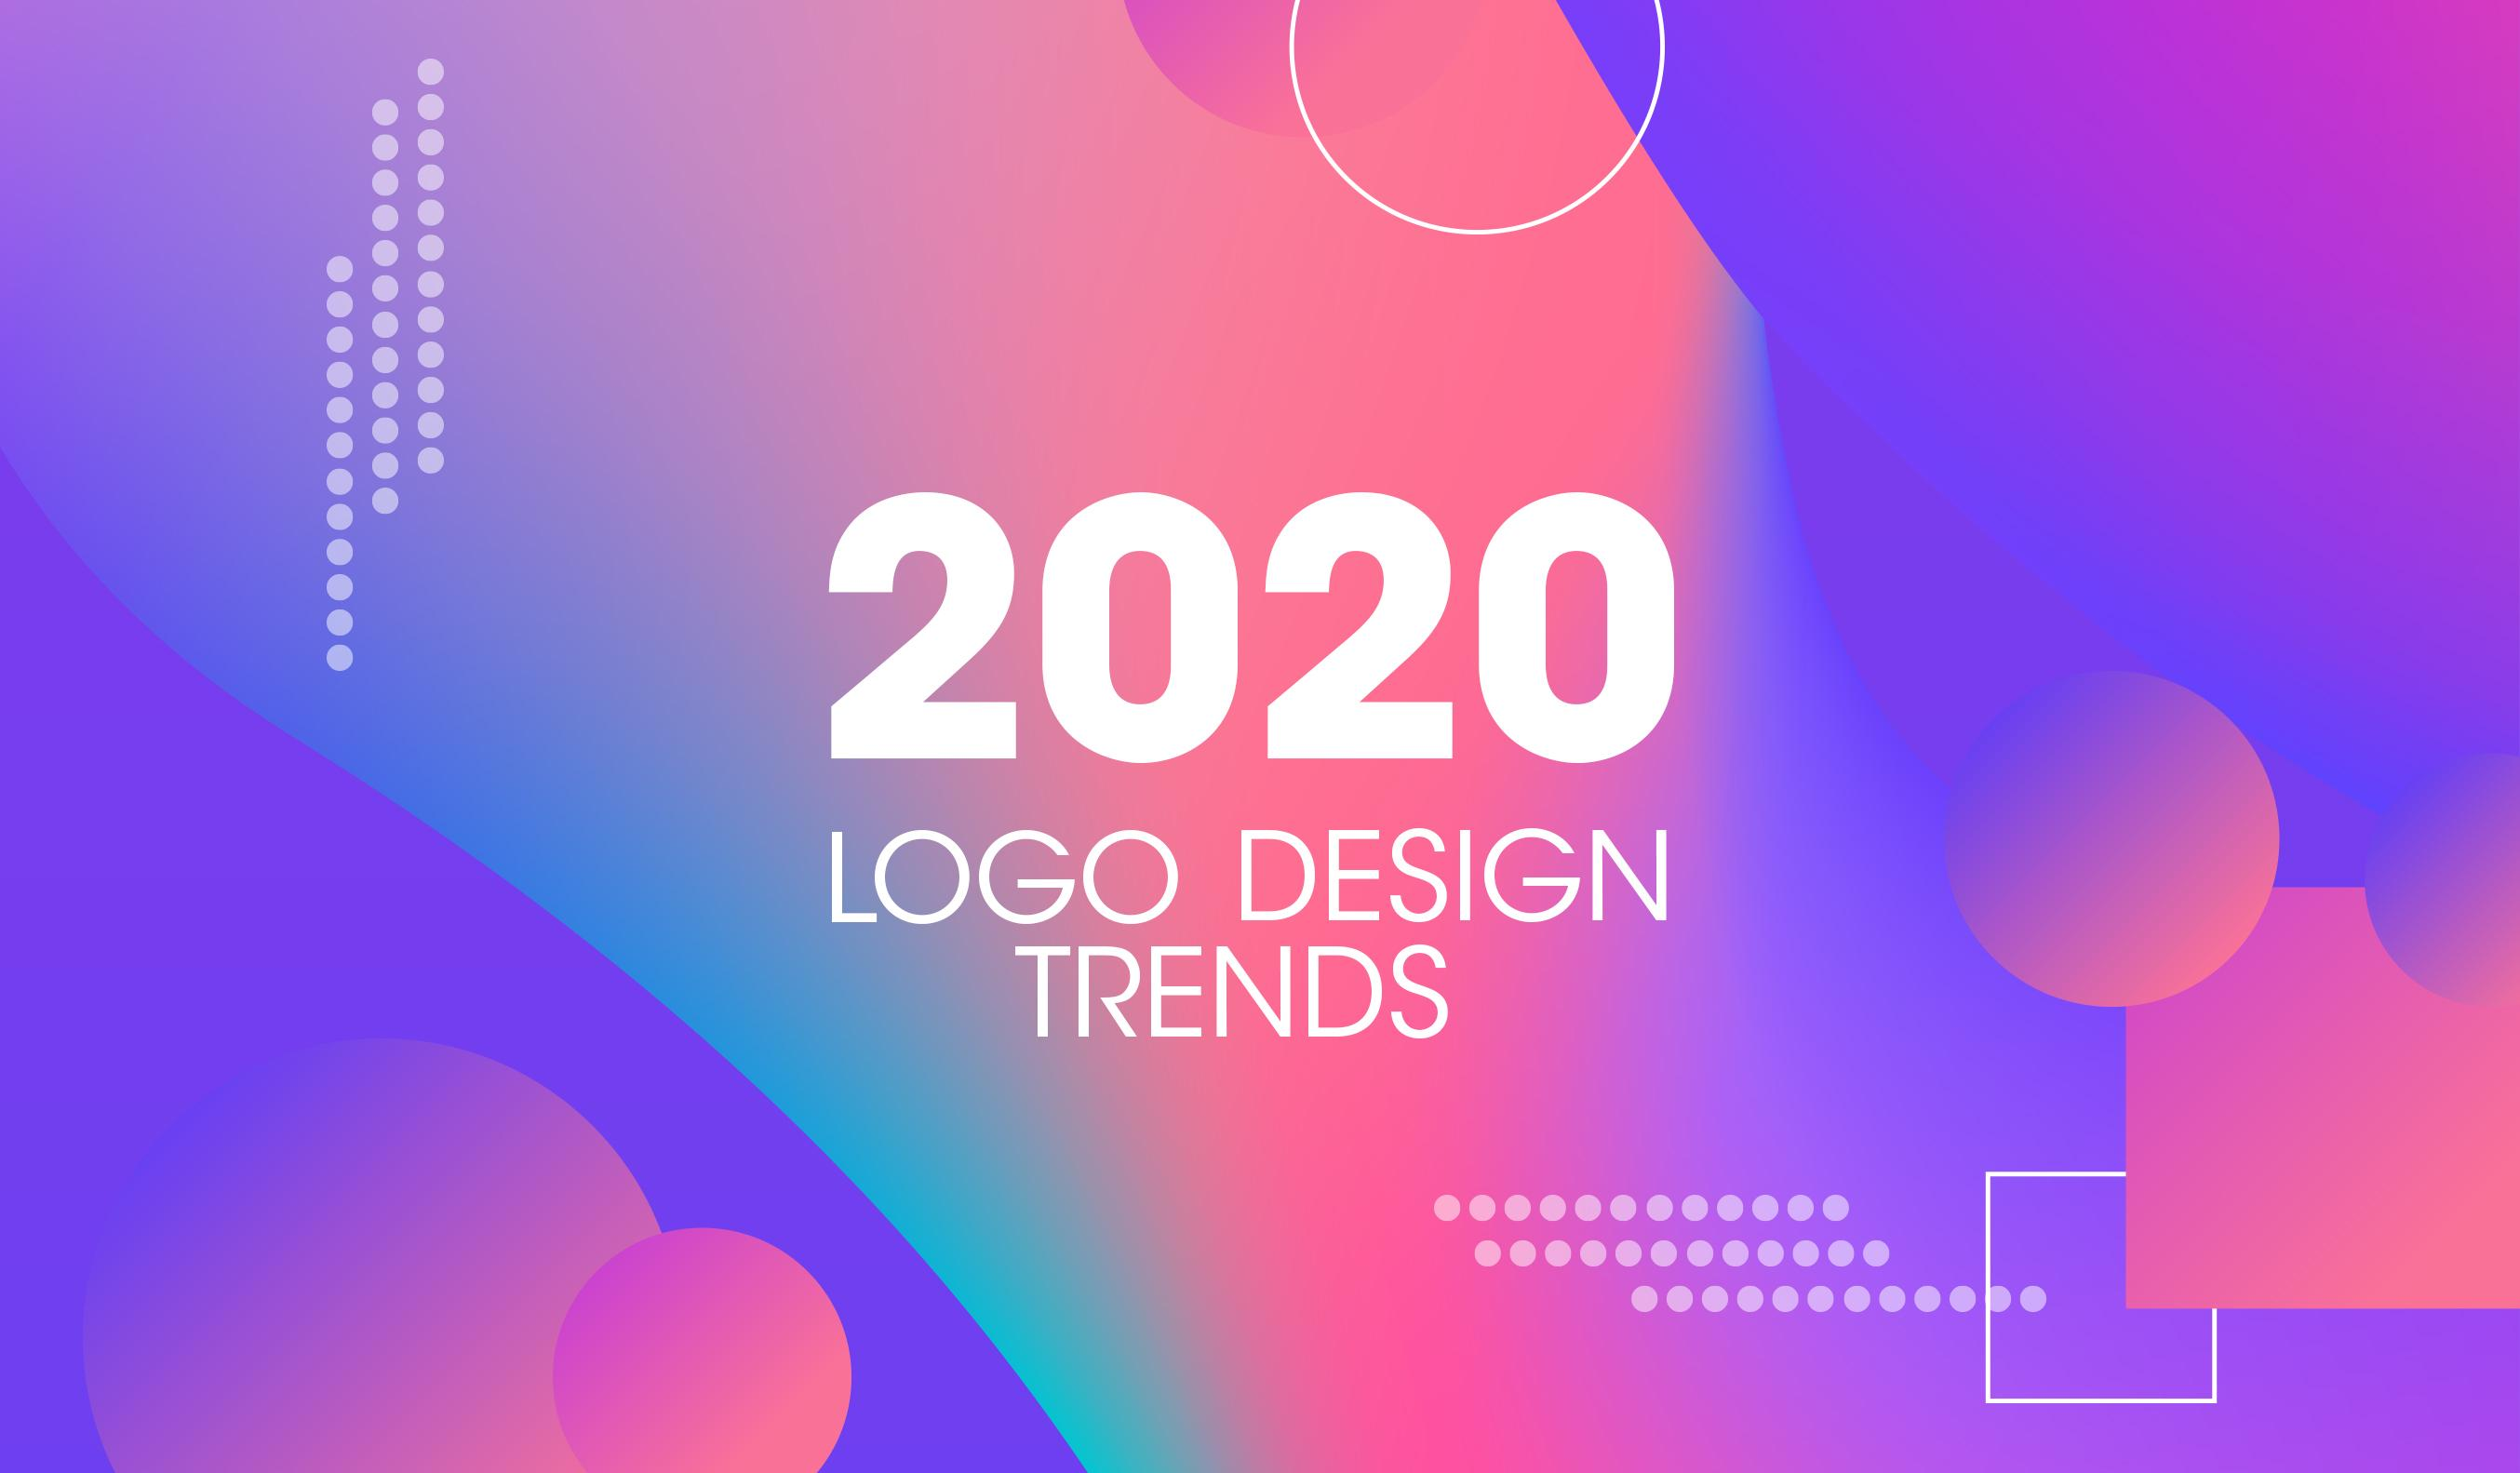 2020 LOGO DESIGN TRENDS - News